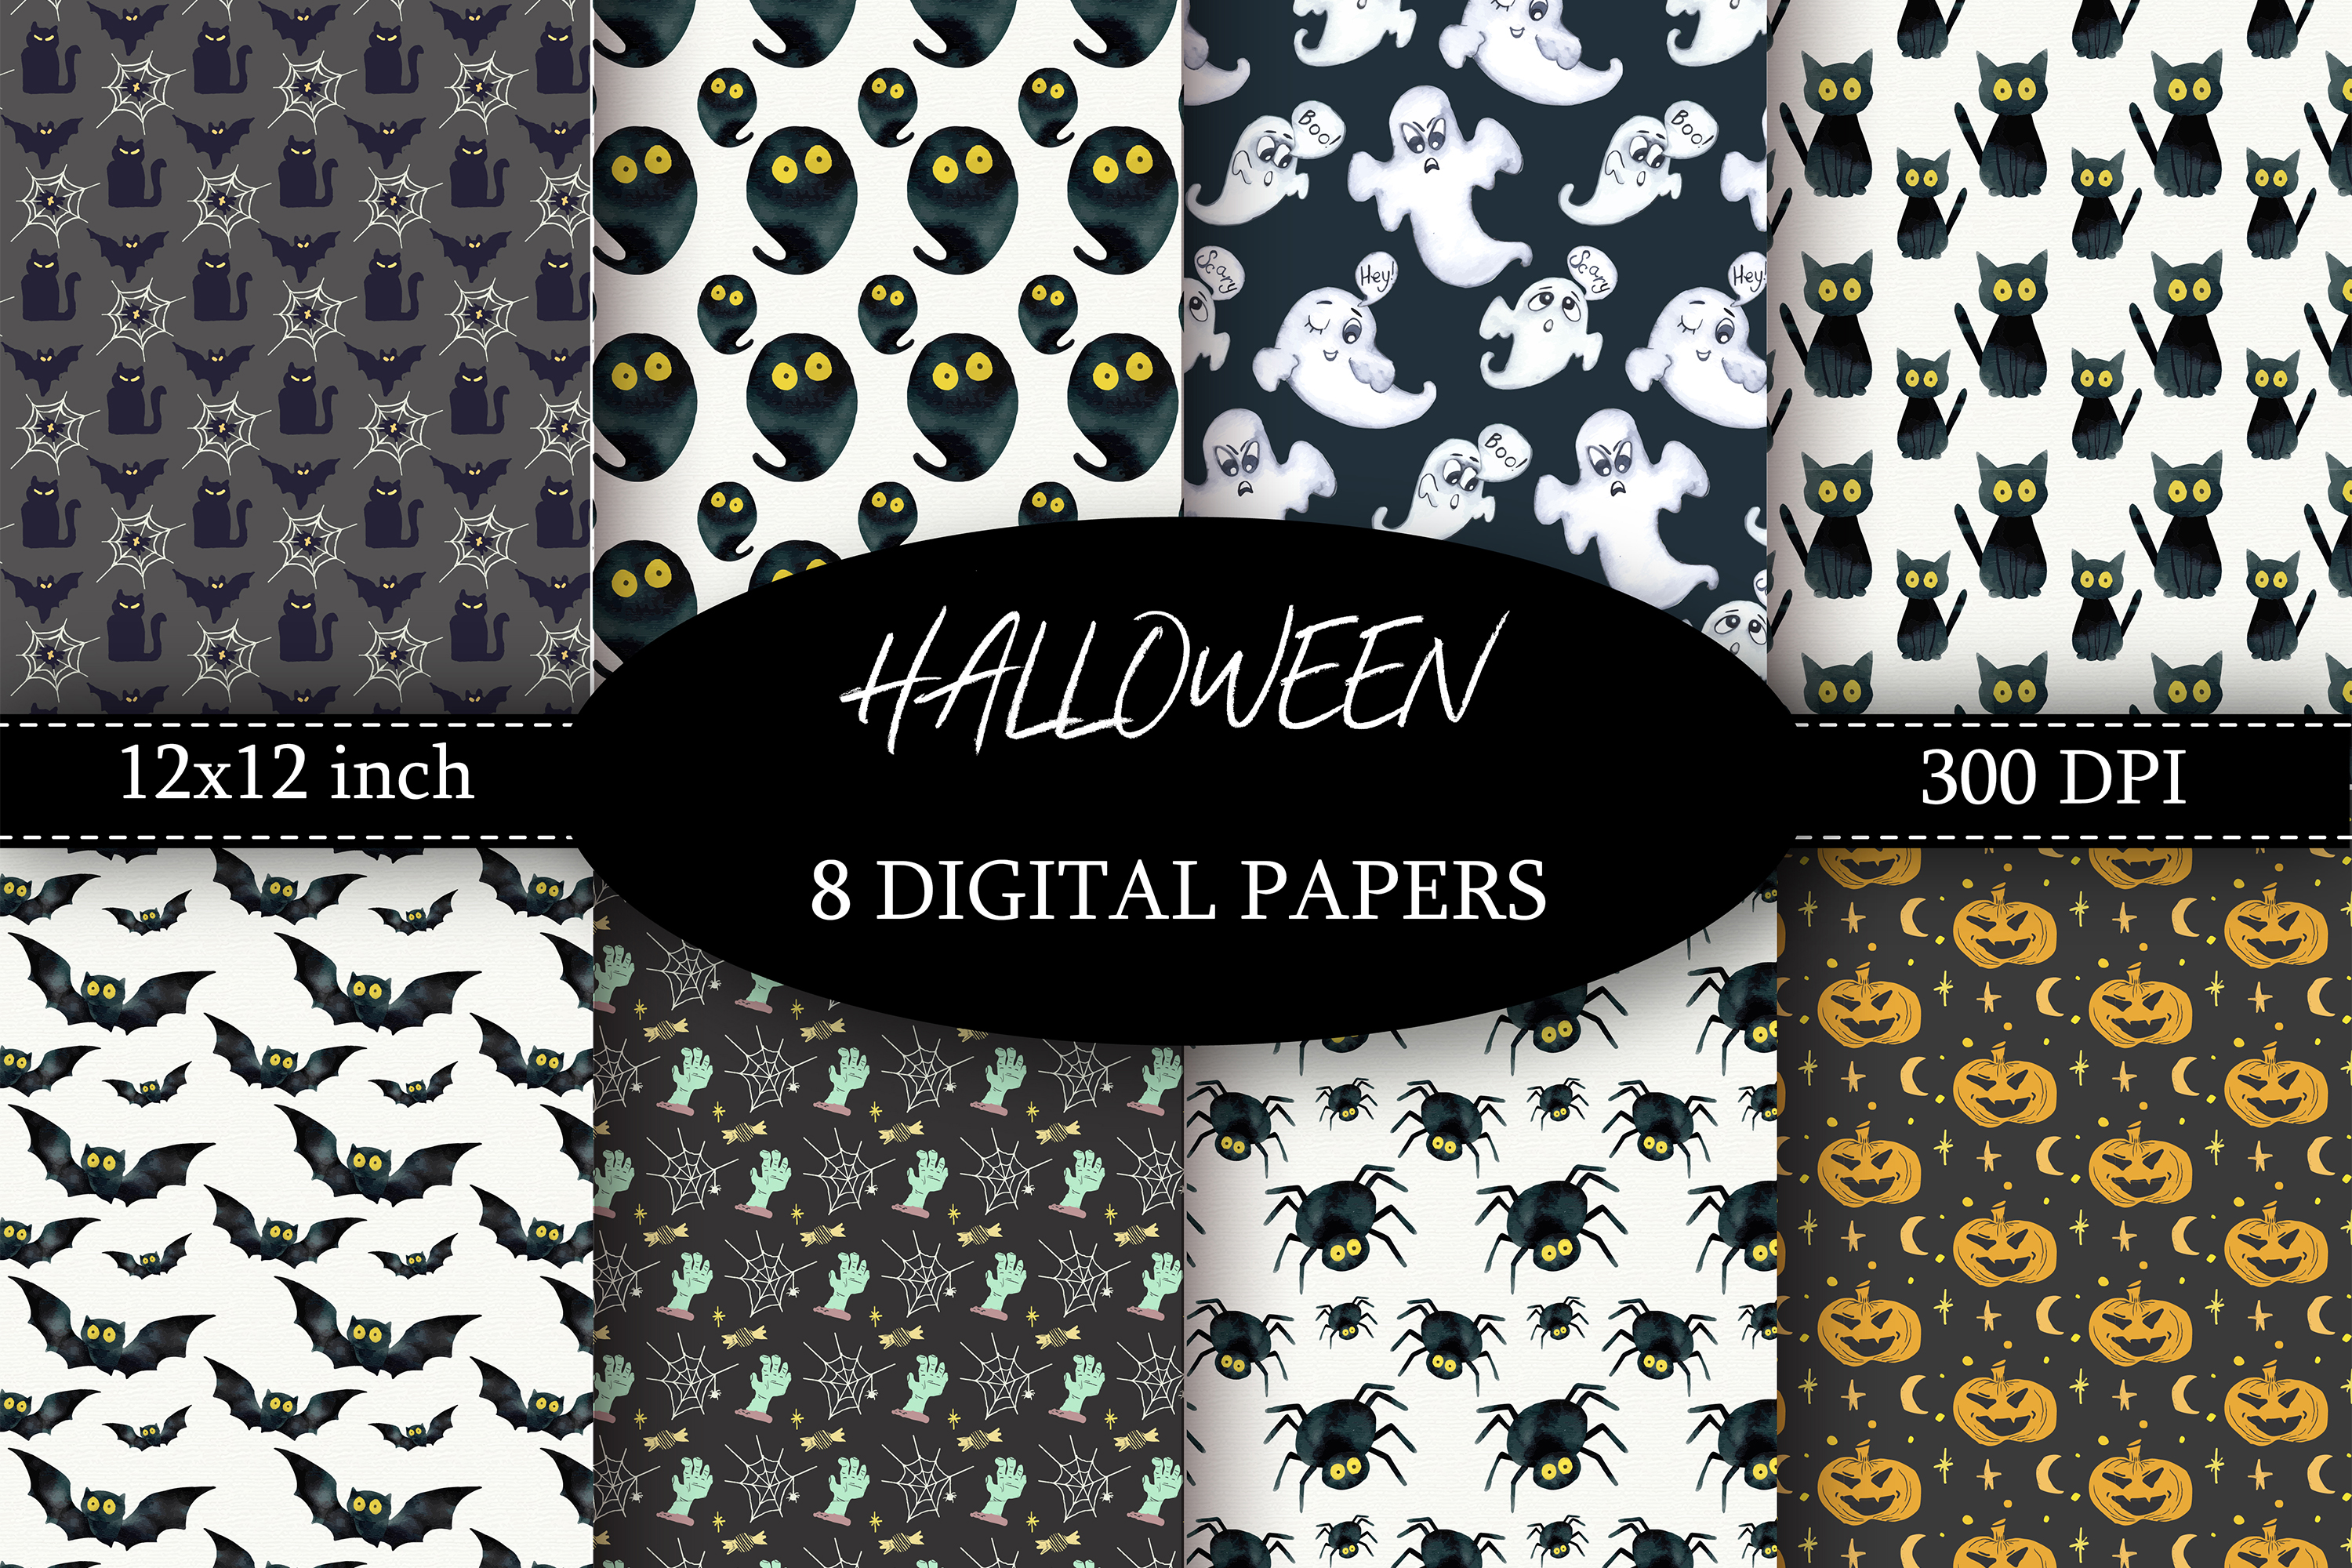 Halloween Digital Paper Textures Black and White example image 1